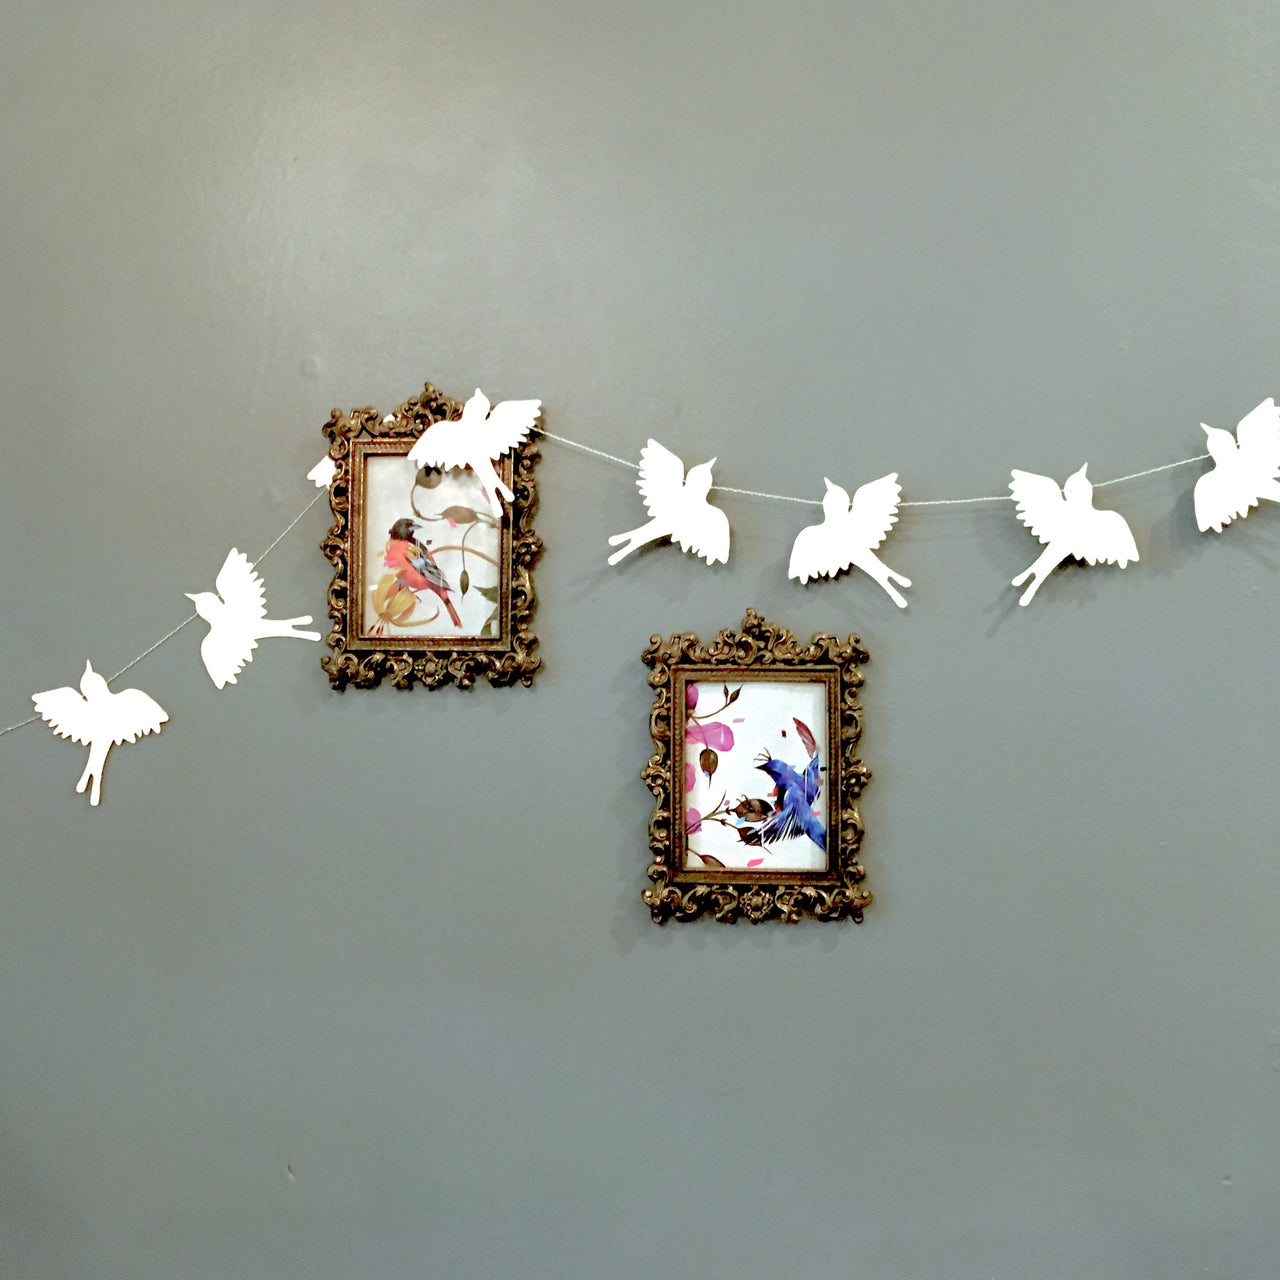 Swallow Silhouette Garland shown on wall